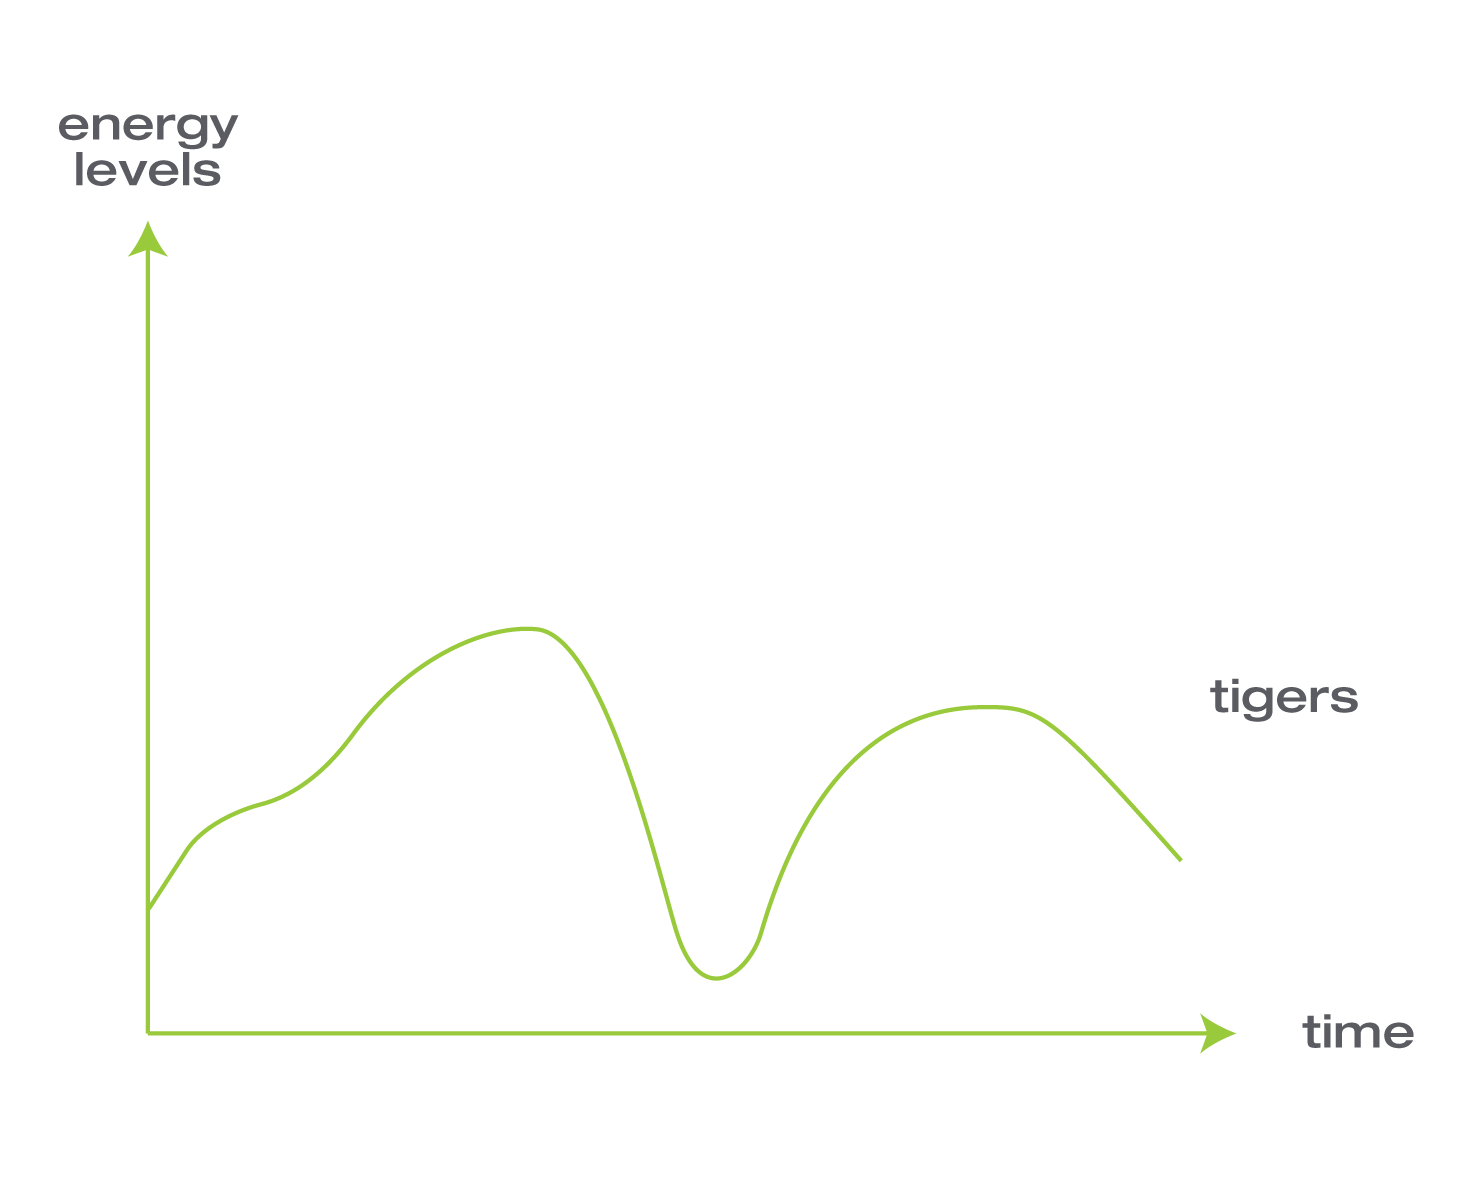 energy levels tigers